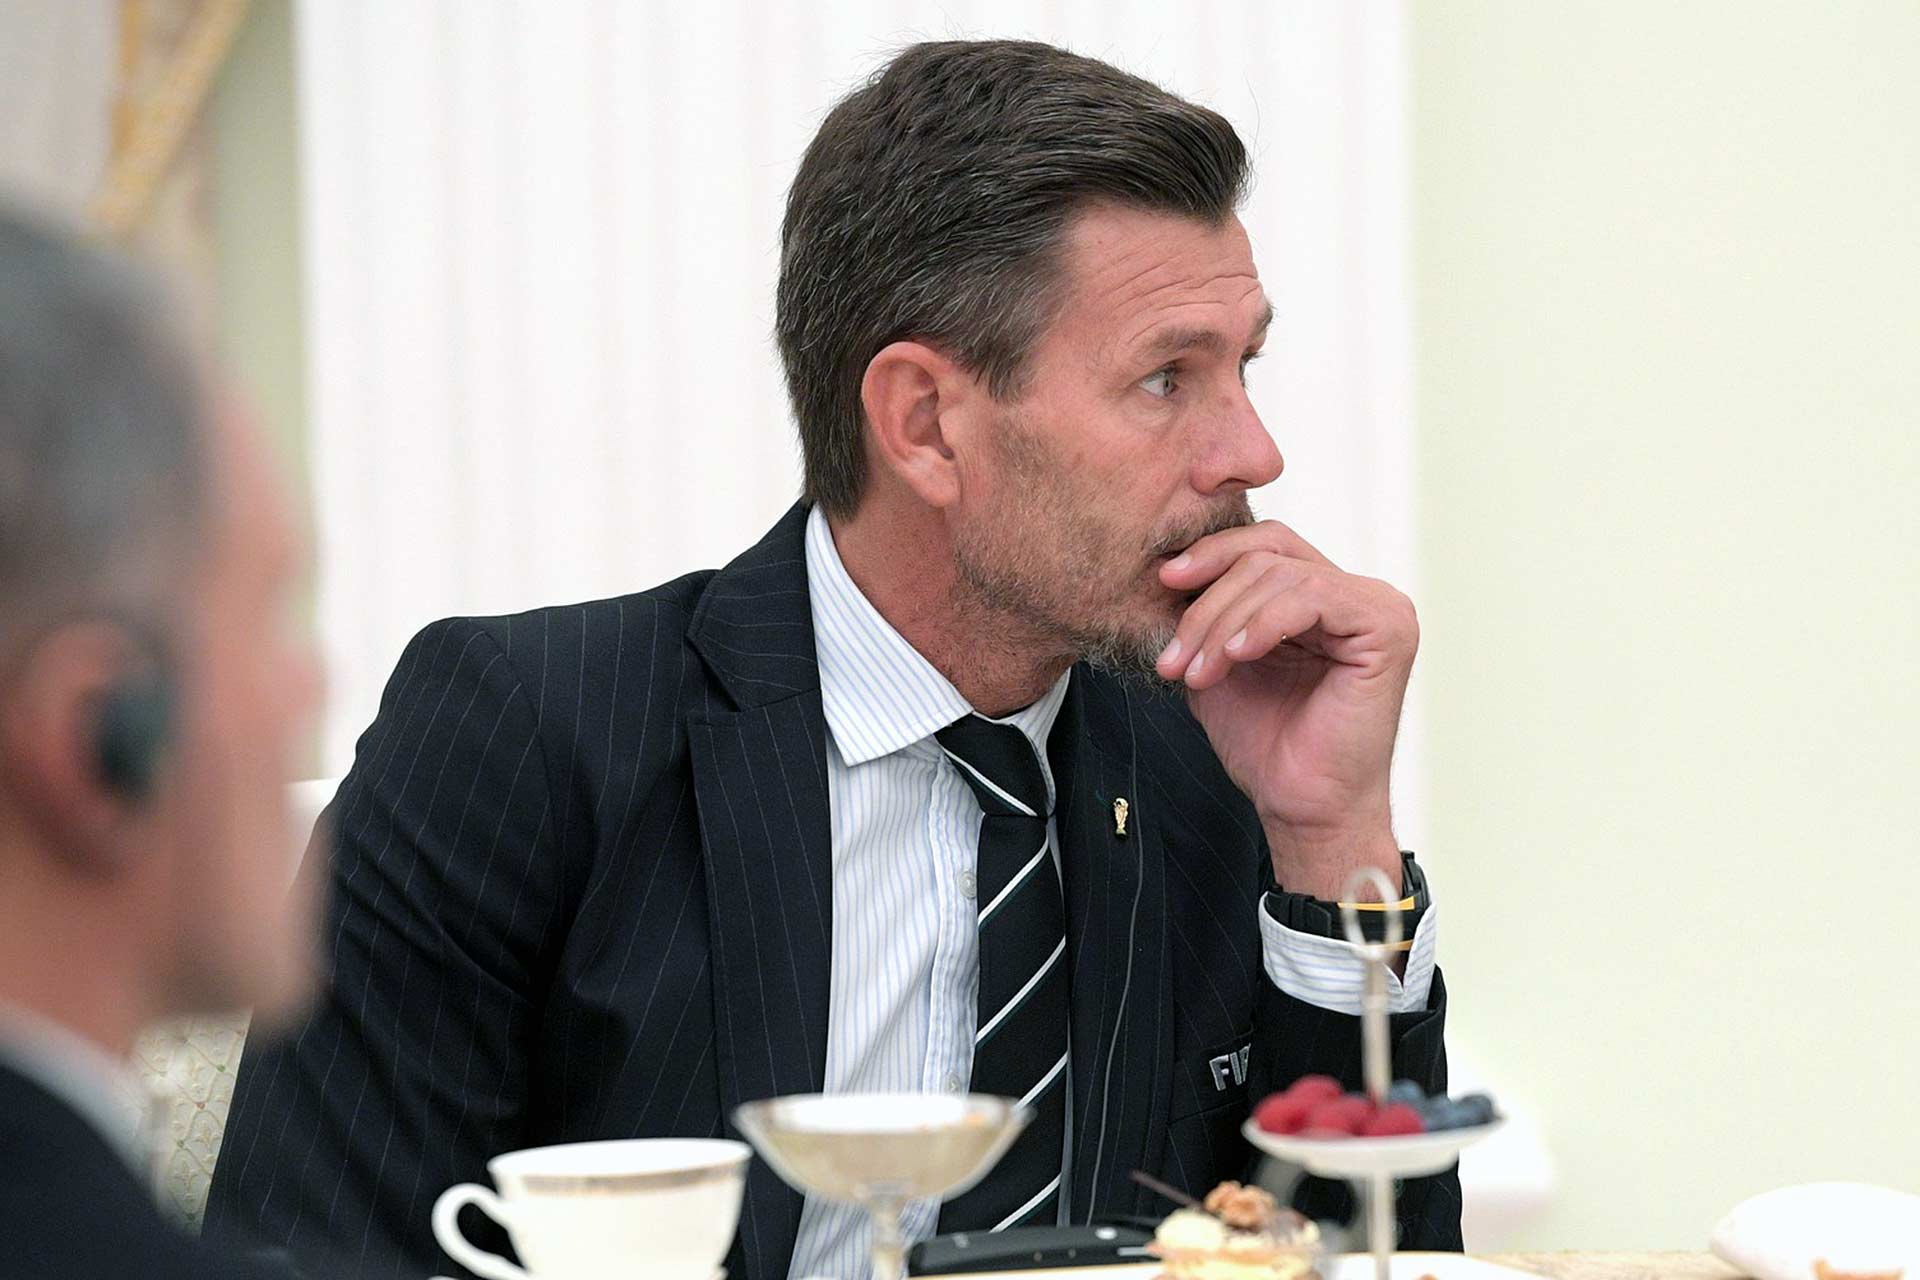 Zvonimir Boban, Croatian soccer player in Moscow during the 2018 Russia World Cup (Source: www.kremlin.ru)